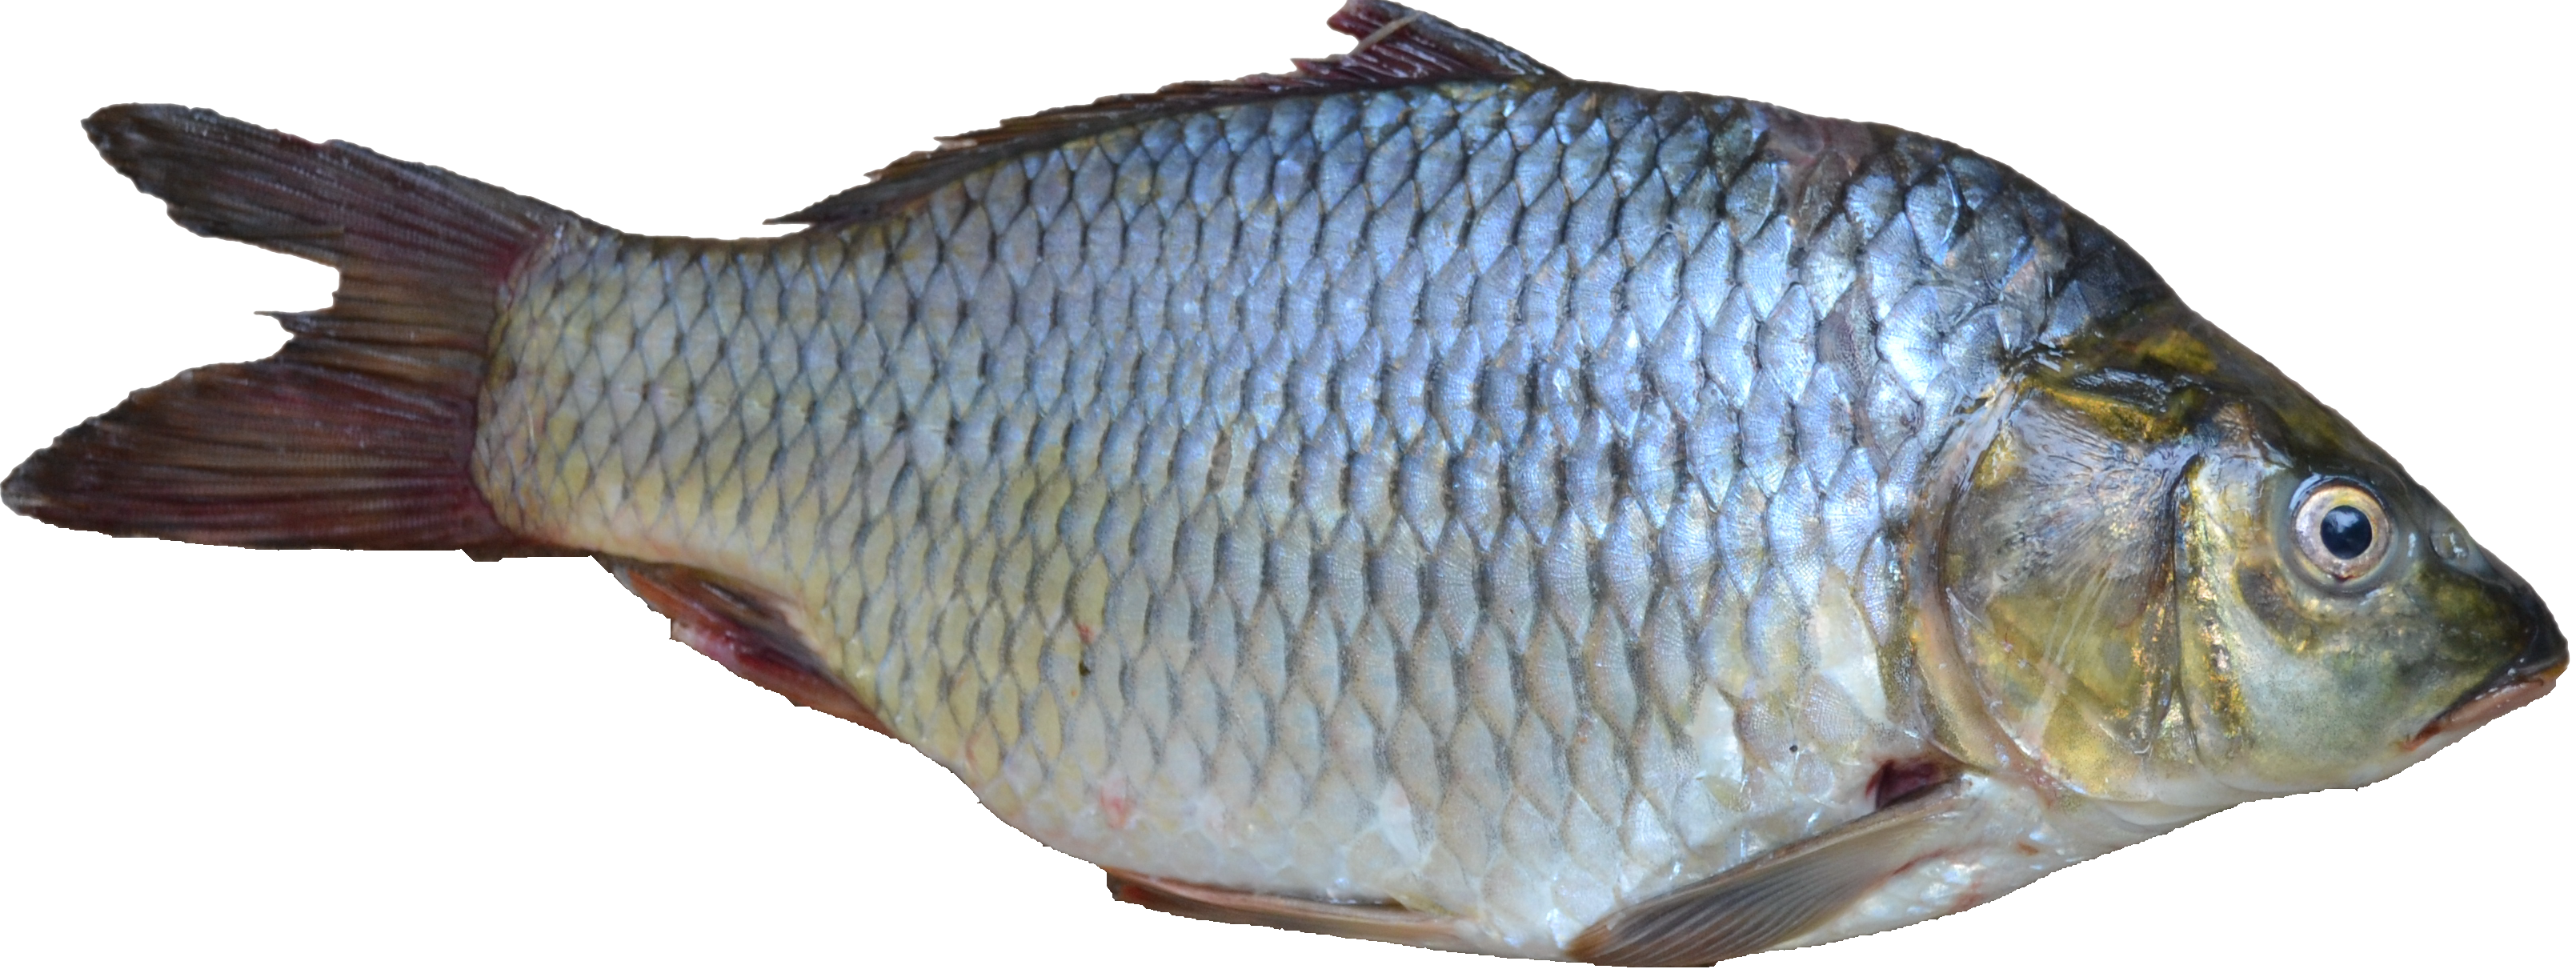 cropped-fish_PNG1158.png (3219×1211)